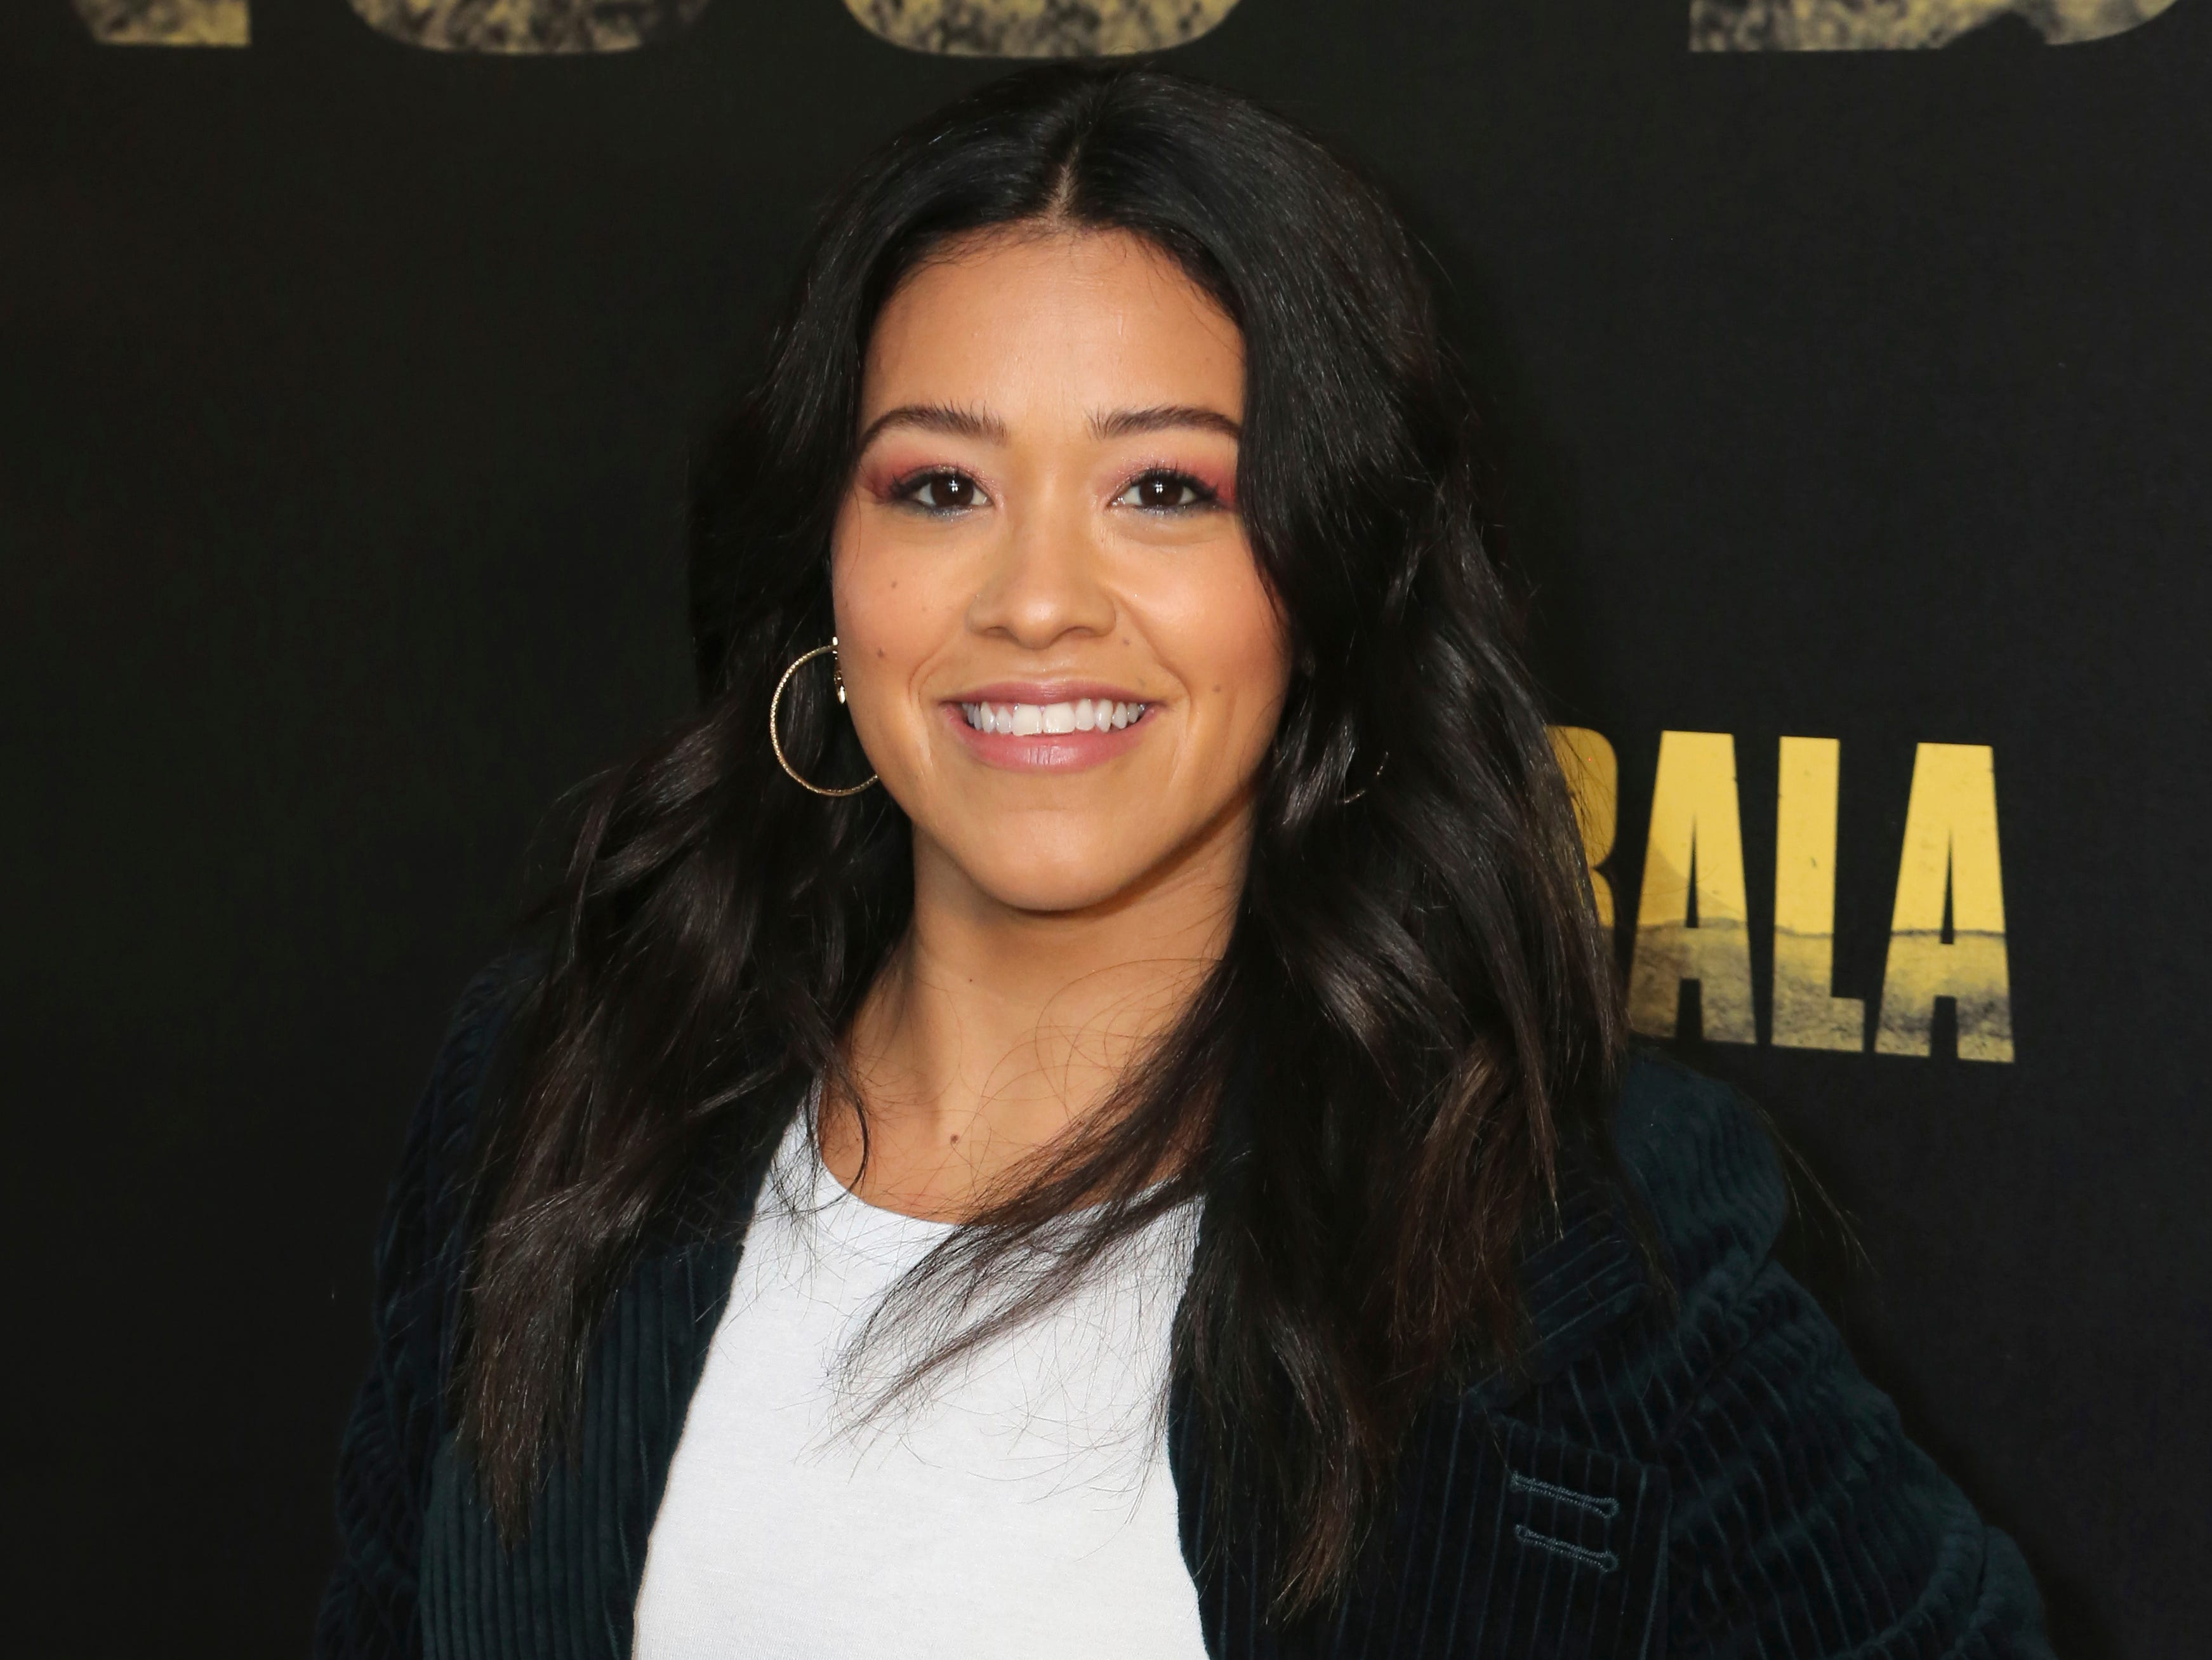 """Gina Rodriguez poses for a photo at the """"Miss Bala"""" Photo Call at The London West Hollywood on Sunday, Jan. 13, 2019 in West Hollywood, Calif."""